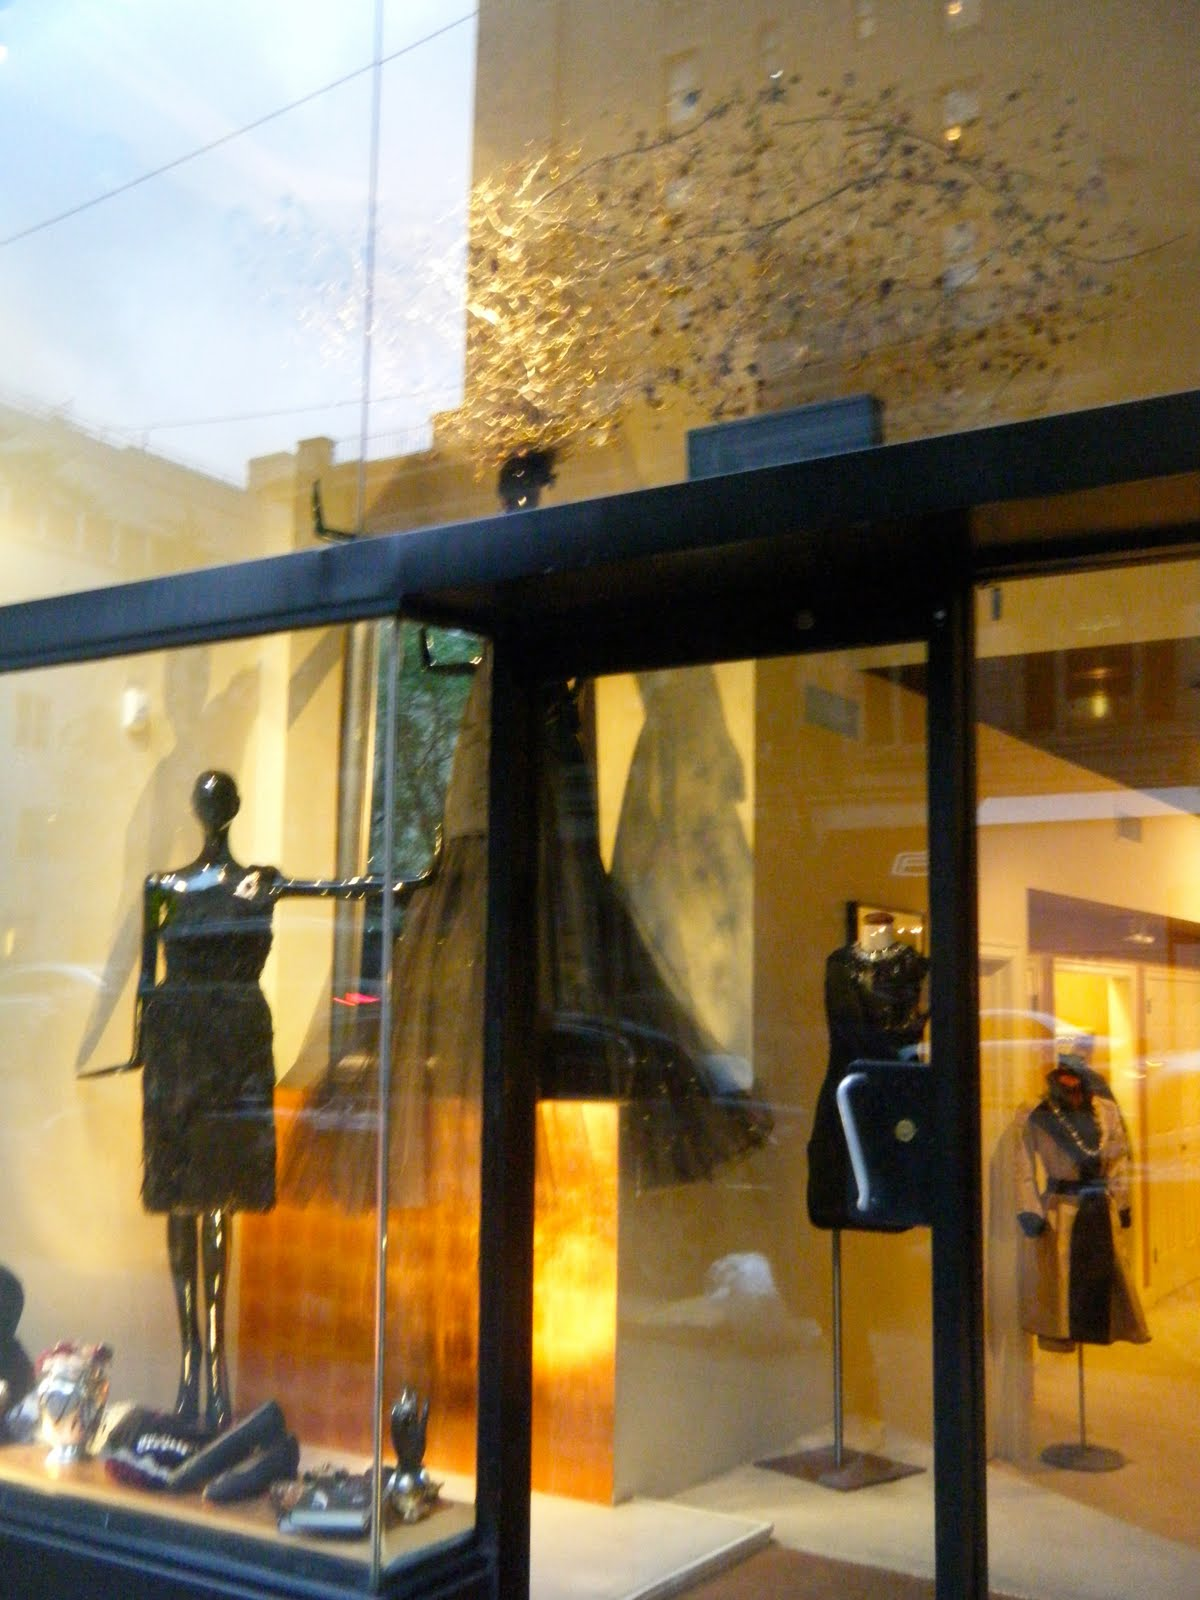 The communication of window displays